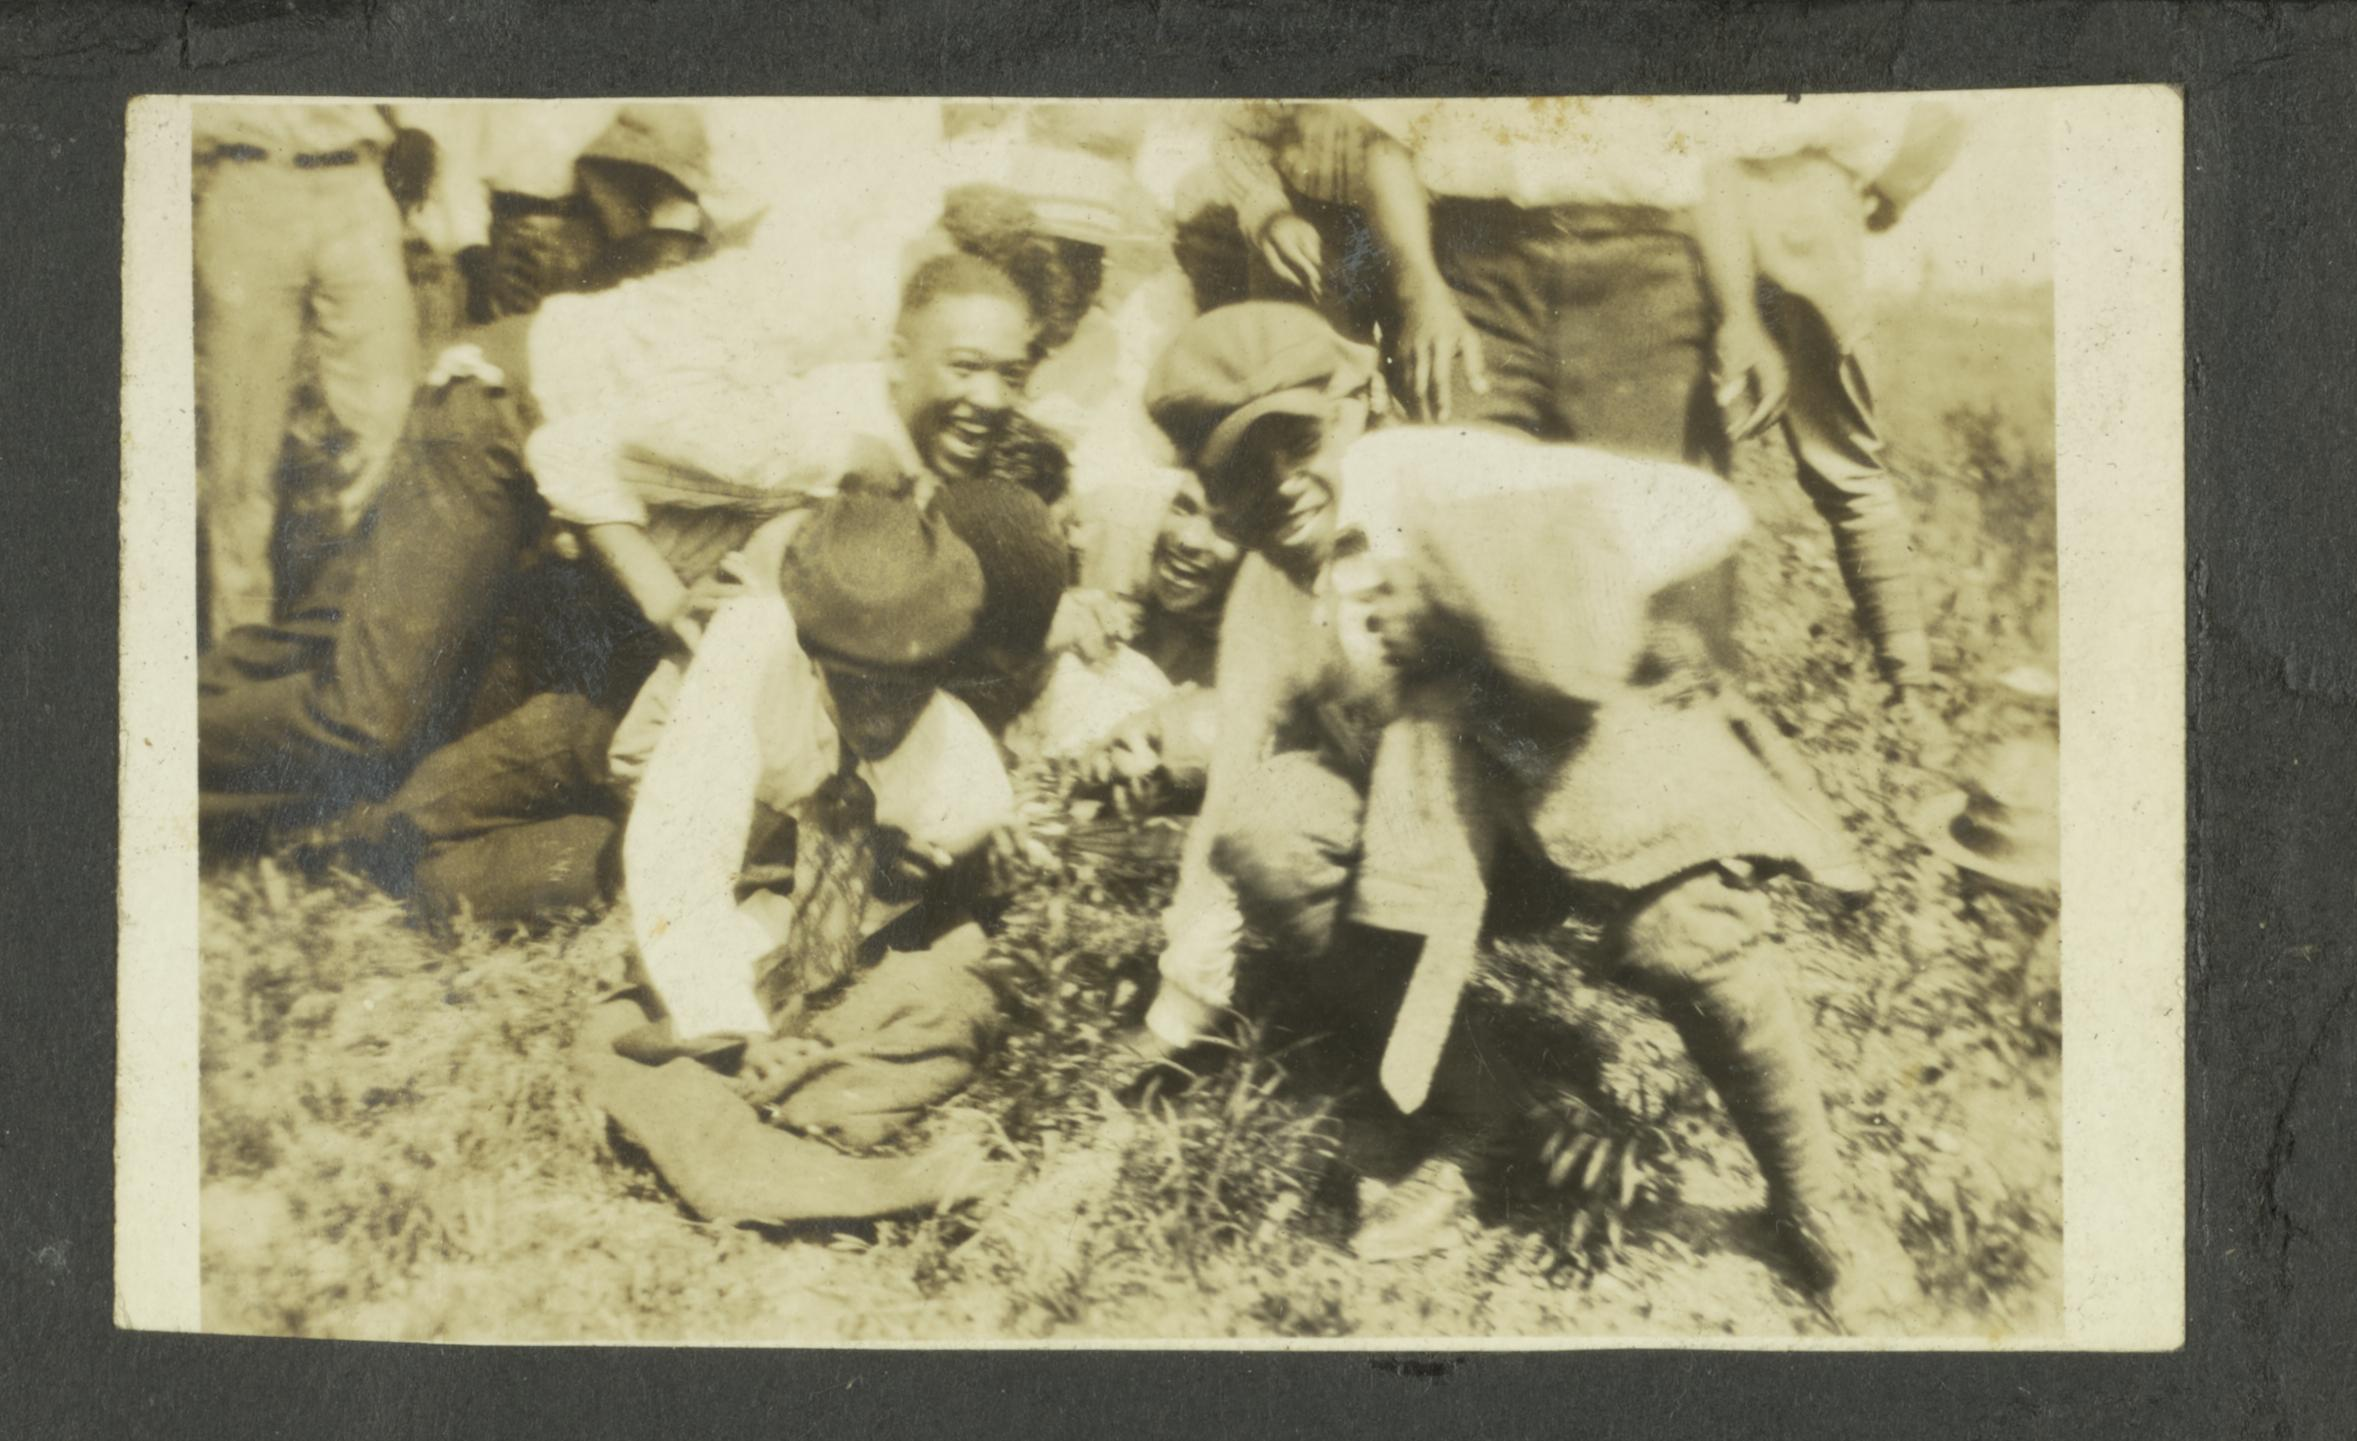 Group of unidentified black men piling on top of each other, undated